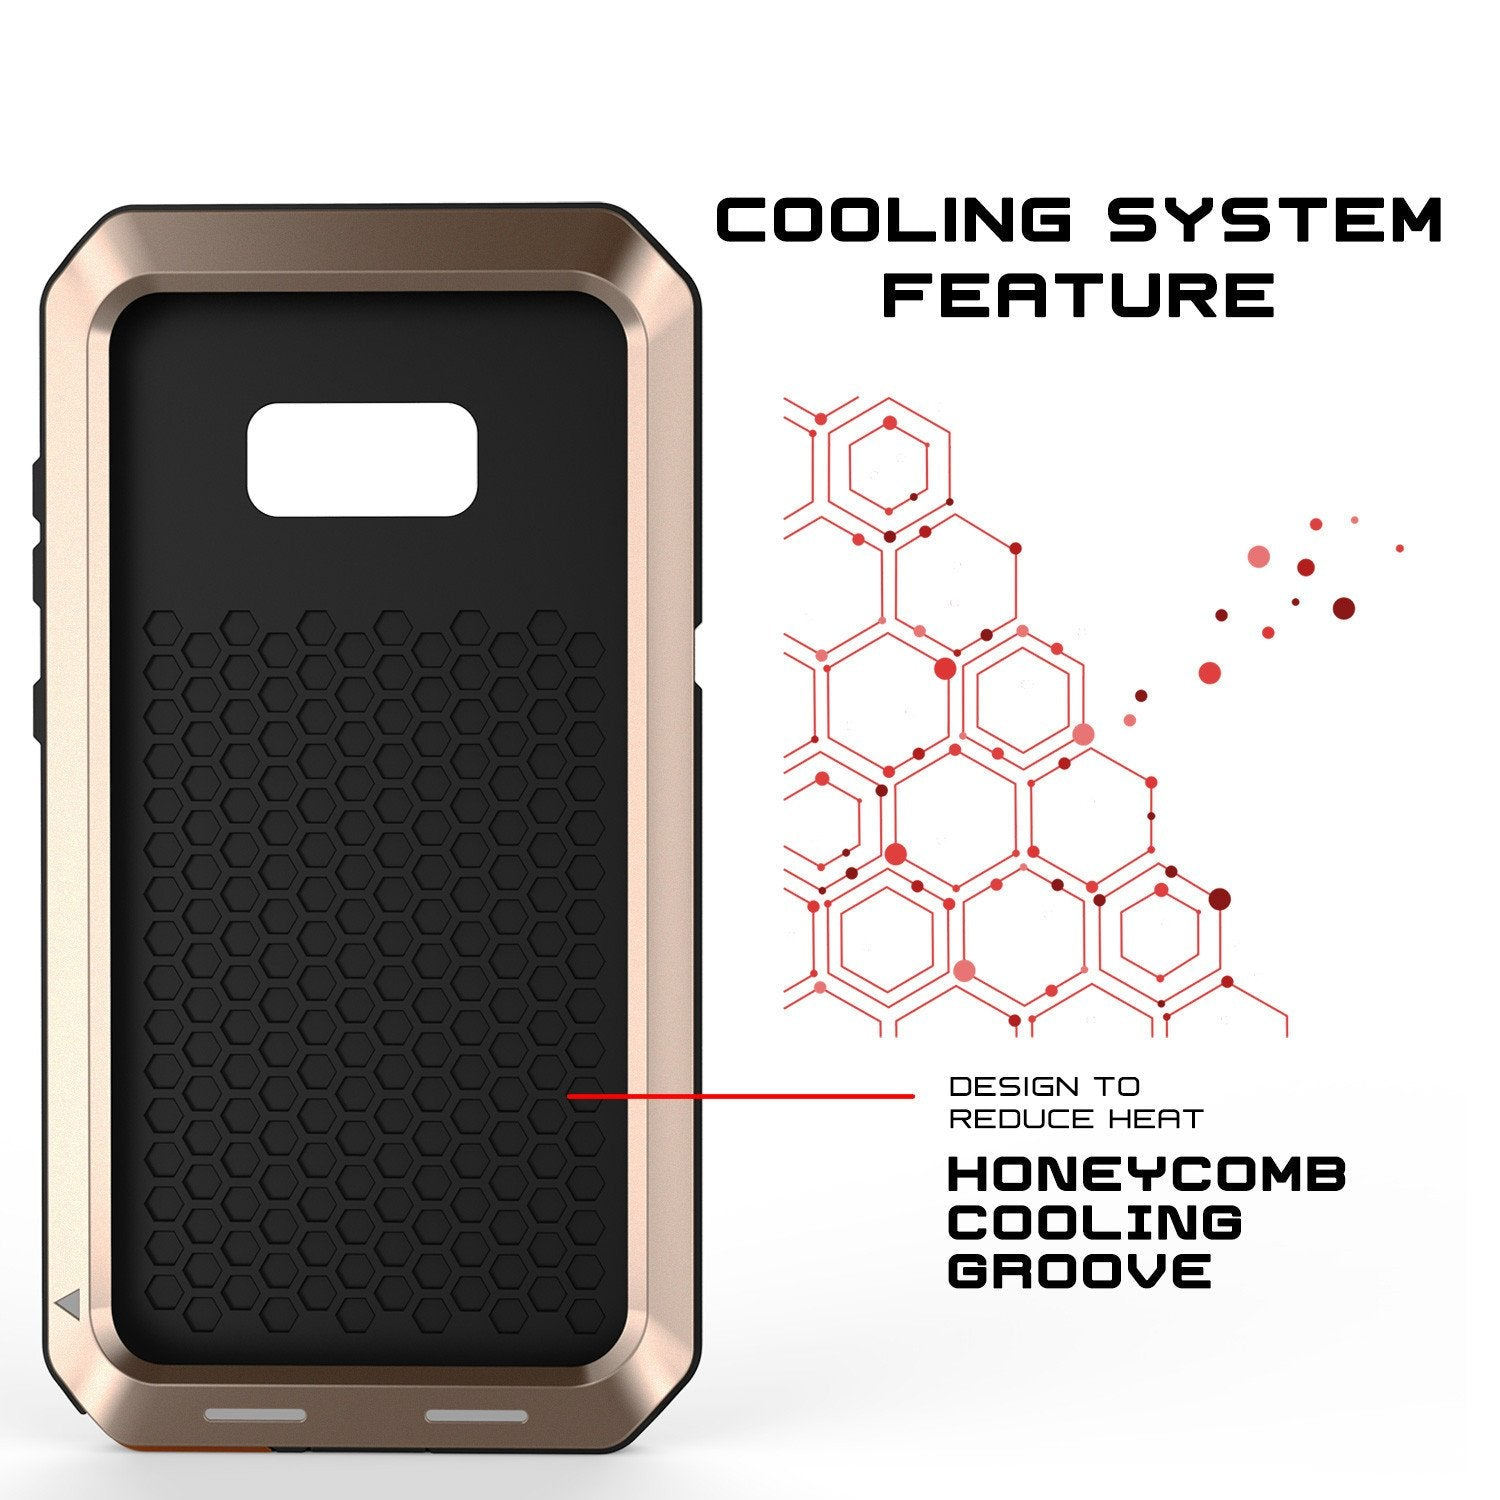 Galaxy S8 Metal Case, Heavy Duty Military Grade Rugged Cover [GOLD]